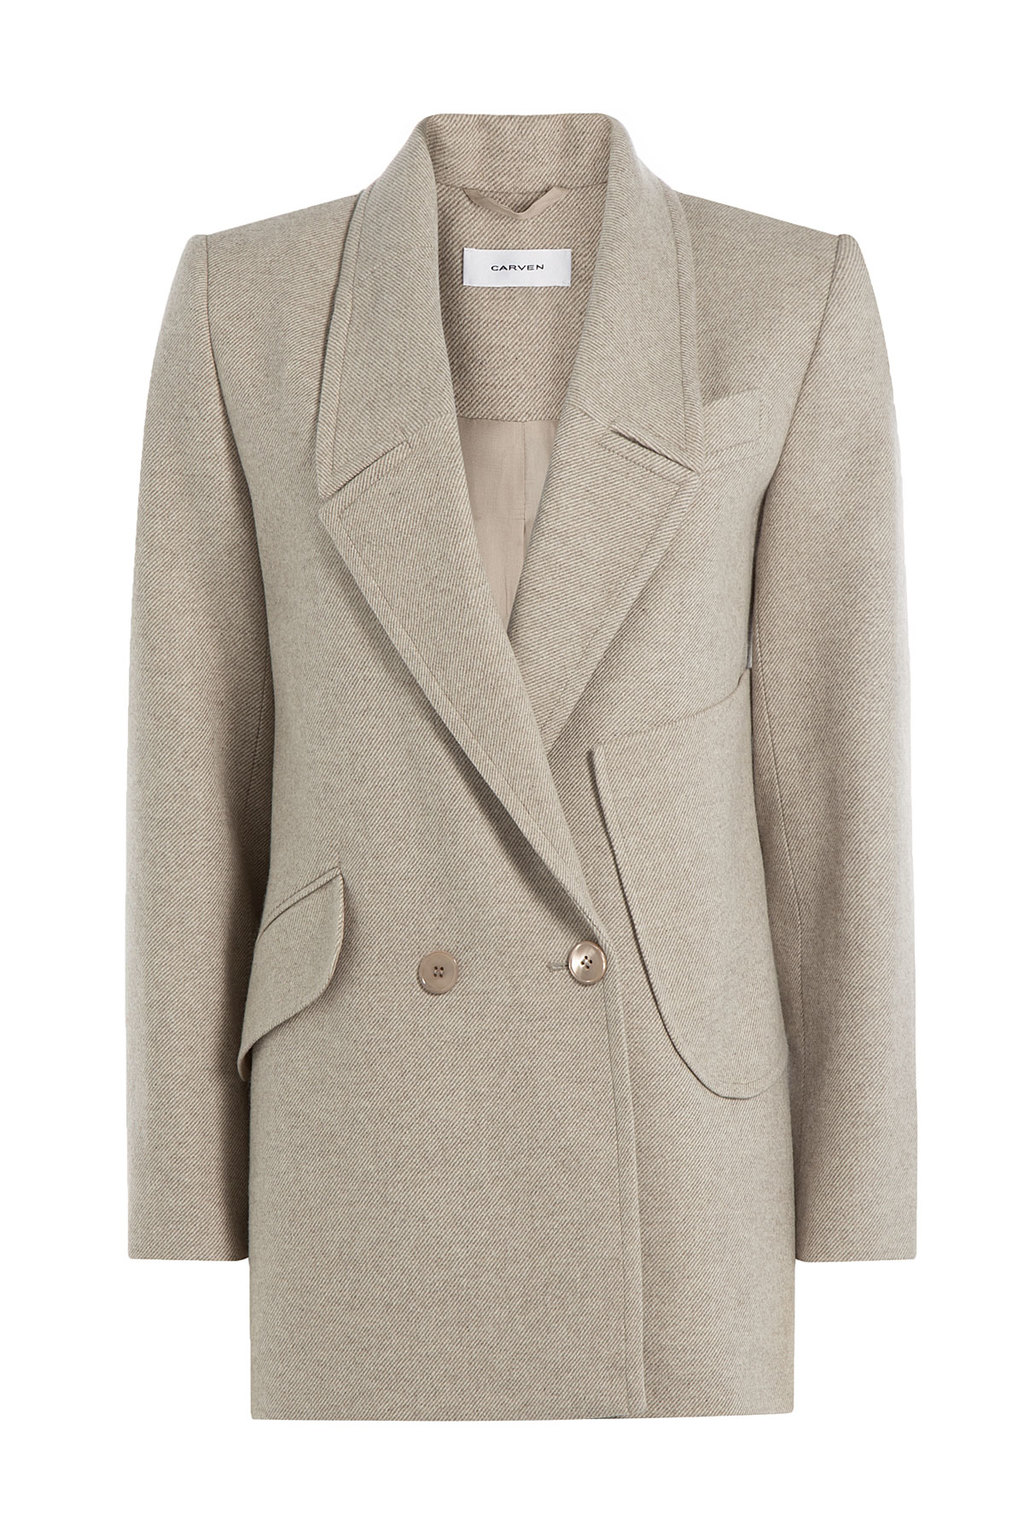 Virgin Wool Jacket Beige - pattern: plain; style: double breasted blazer; length: below the bottom; collar: standard lapel/rever collar; predominant colour: stone; occasions: casual, creative work; fit: tailored/fitted; fibres: wool - 100%; sleeve length: long sleeve; sleeve style: standard; collar break: medium; pattern type: fabric; texture group: woven light midweight; hip detail: front pockets at hip; season: a/w 2015